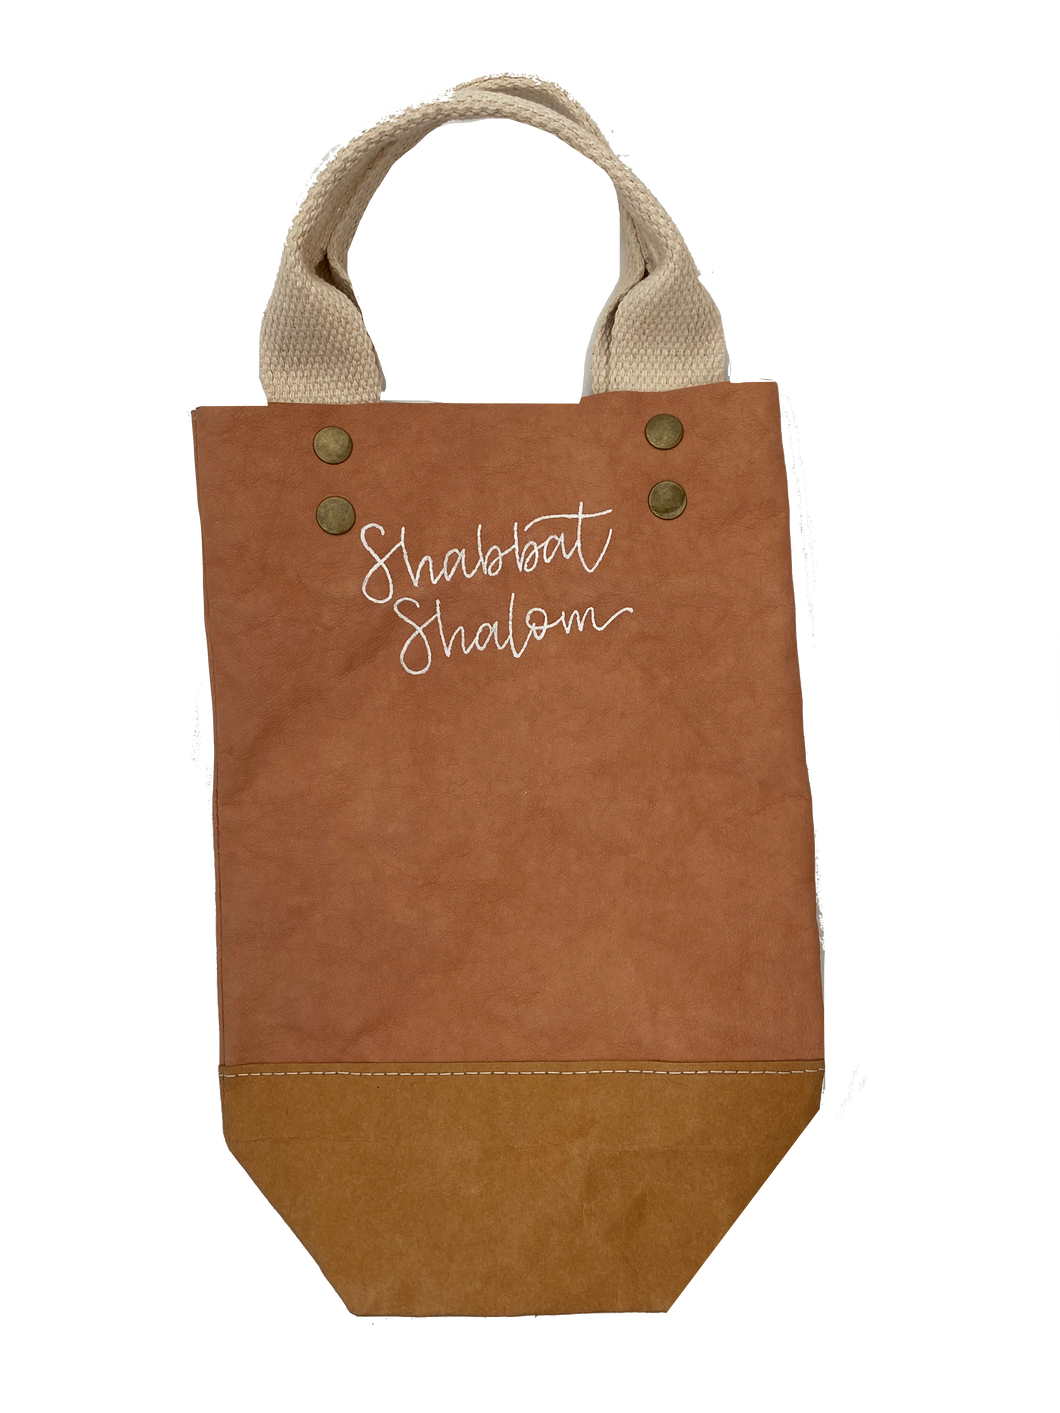 Shabbat Shalom Wine Bag